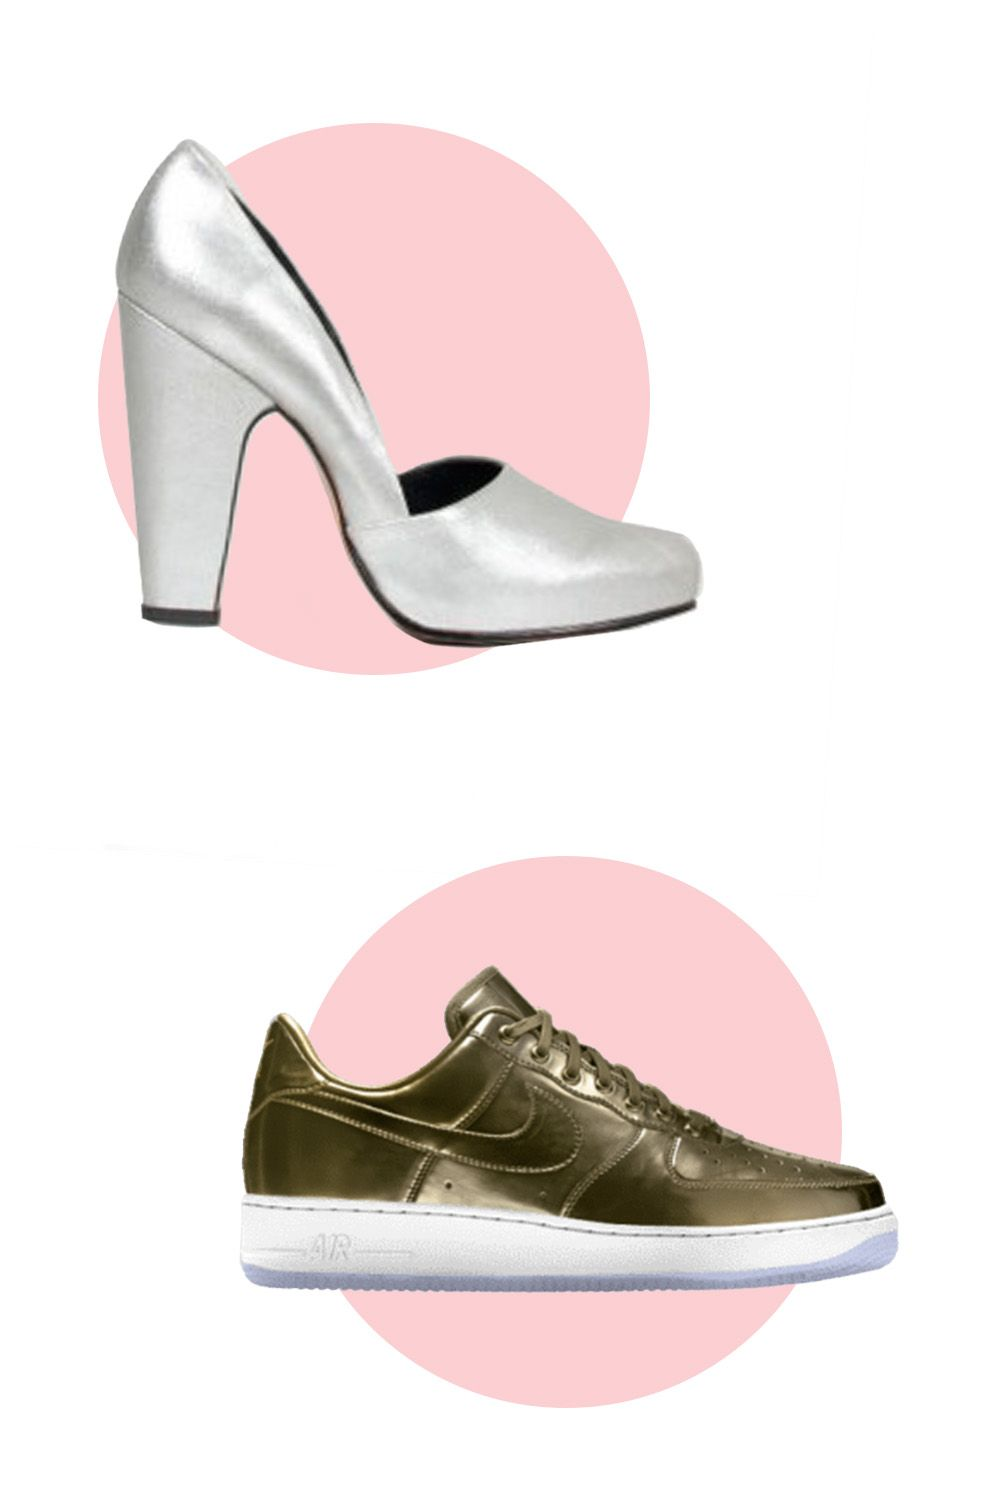 """<p>Rachel Comey Solitare Heels, $414; <a href=""""https://www.rachelcomey.com/womens-store/shoes/almost-sold-out/solitaire-3.html?color=Silver&size=5"""">rachelcomey.com</a></p><p>Nike Air Force 1 Low Premium iD, $165; <a href=""""http://store.nike.com/us/en_us/product/air-force-1-low-premium-id/?piid=42900&pbid=845052772#?pbid=845052772"""">nike.com</a></p>"""